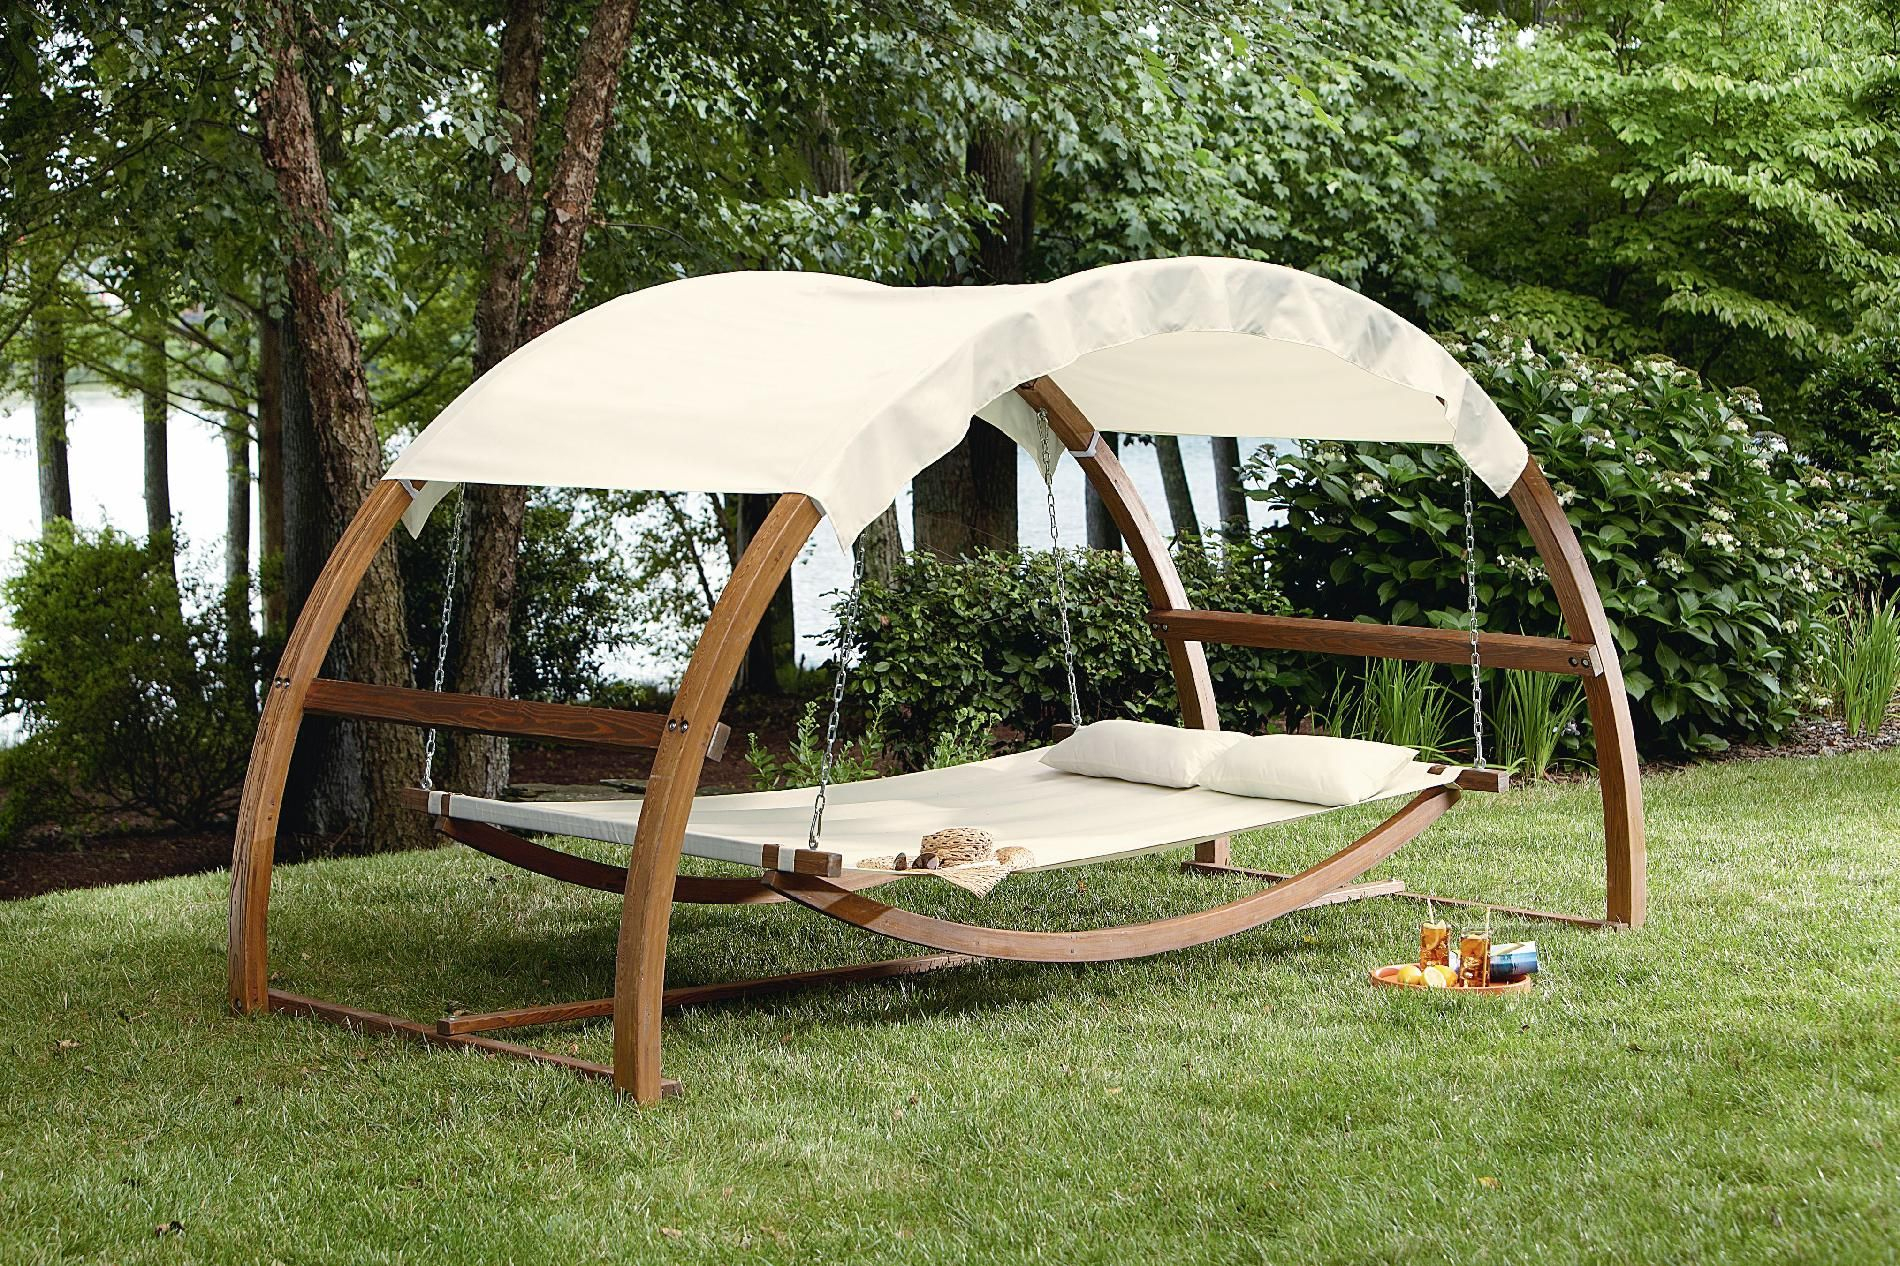 I Would Never Come In The House!! Garden Oasis Arch Swing ... tout Balancelle Lit De Jardin